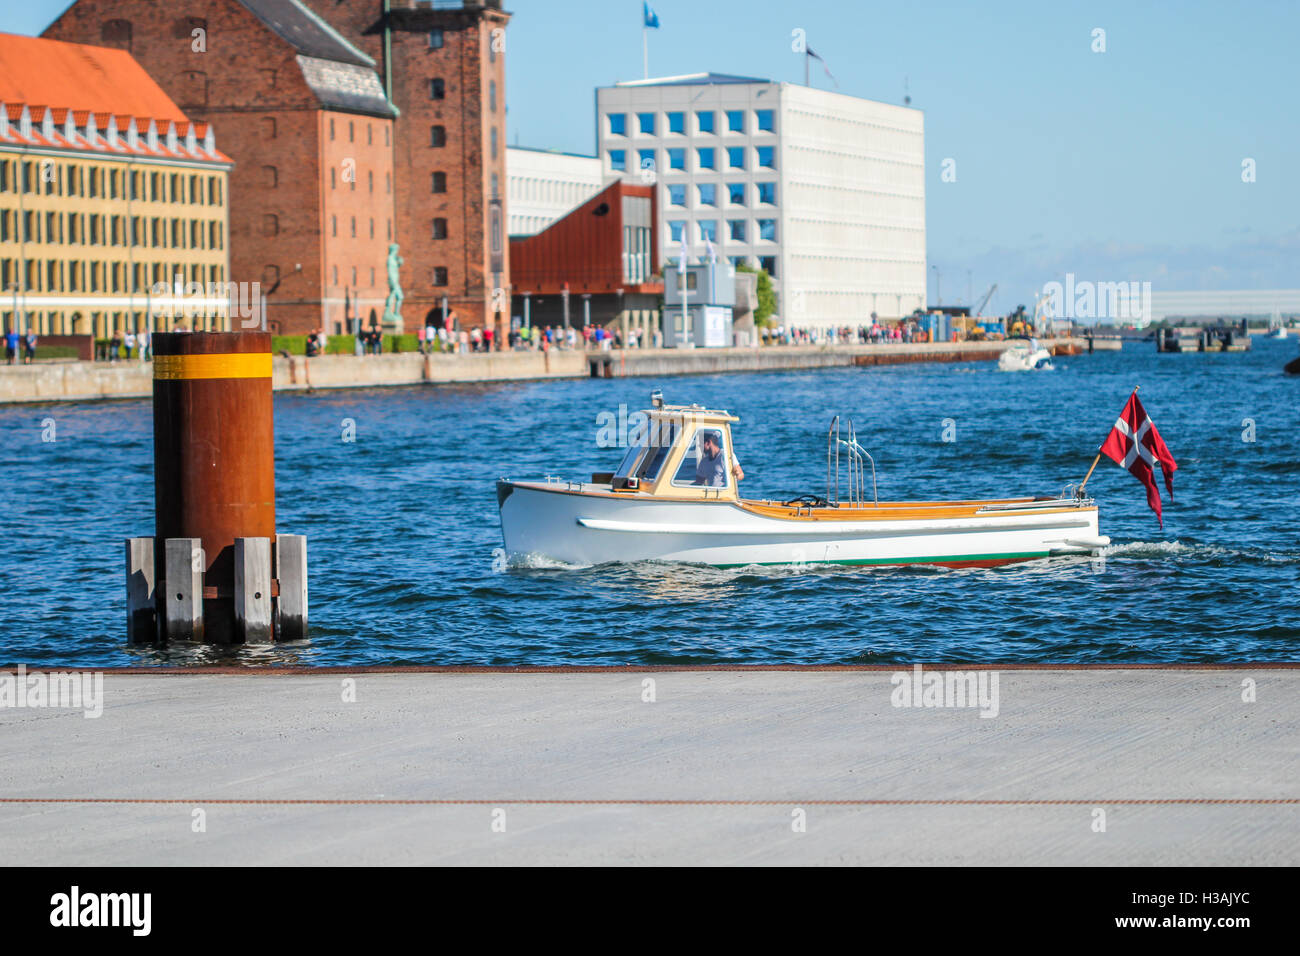 City center in Copenhagen greater area during warm spring day - Stock Image